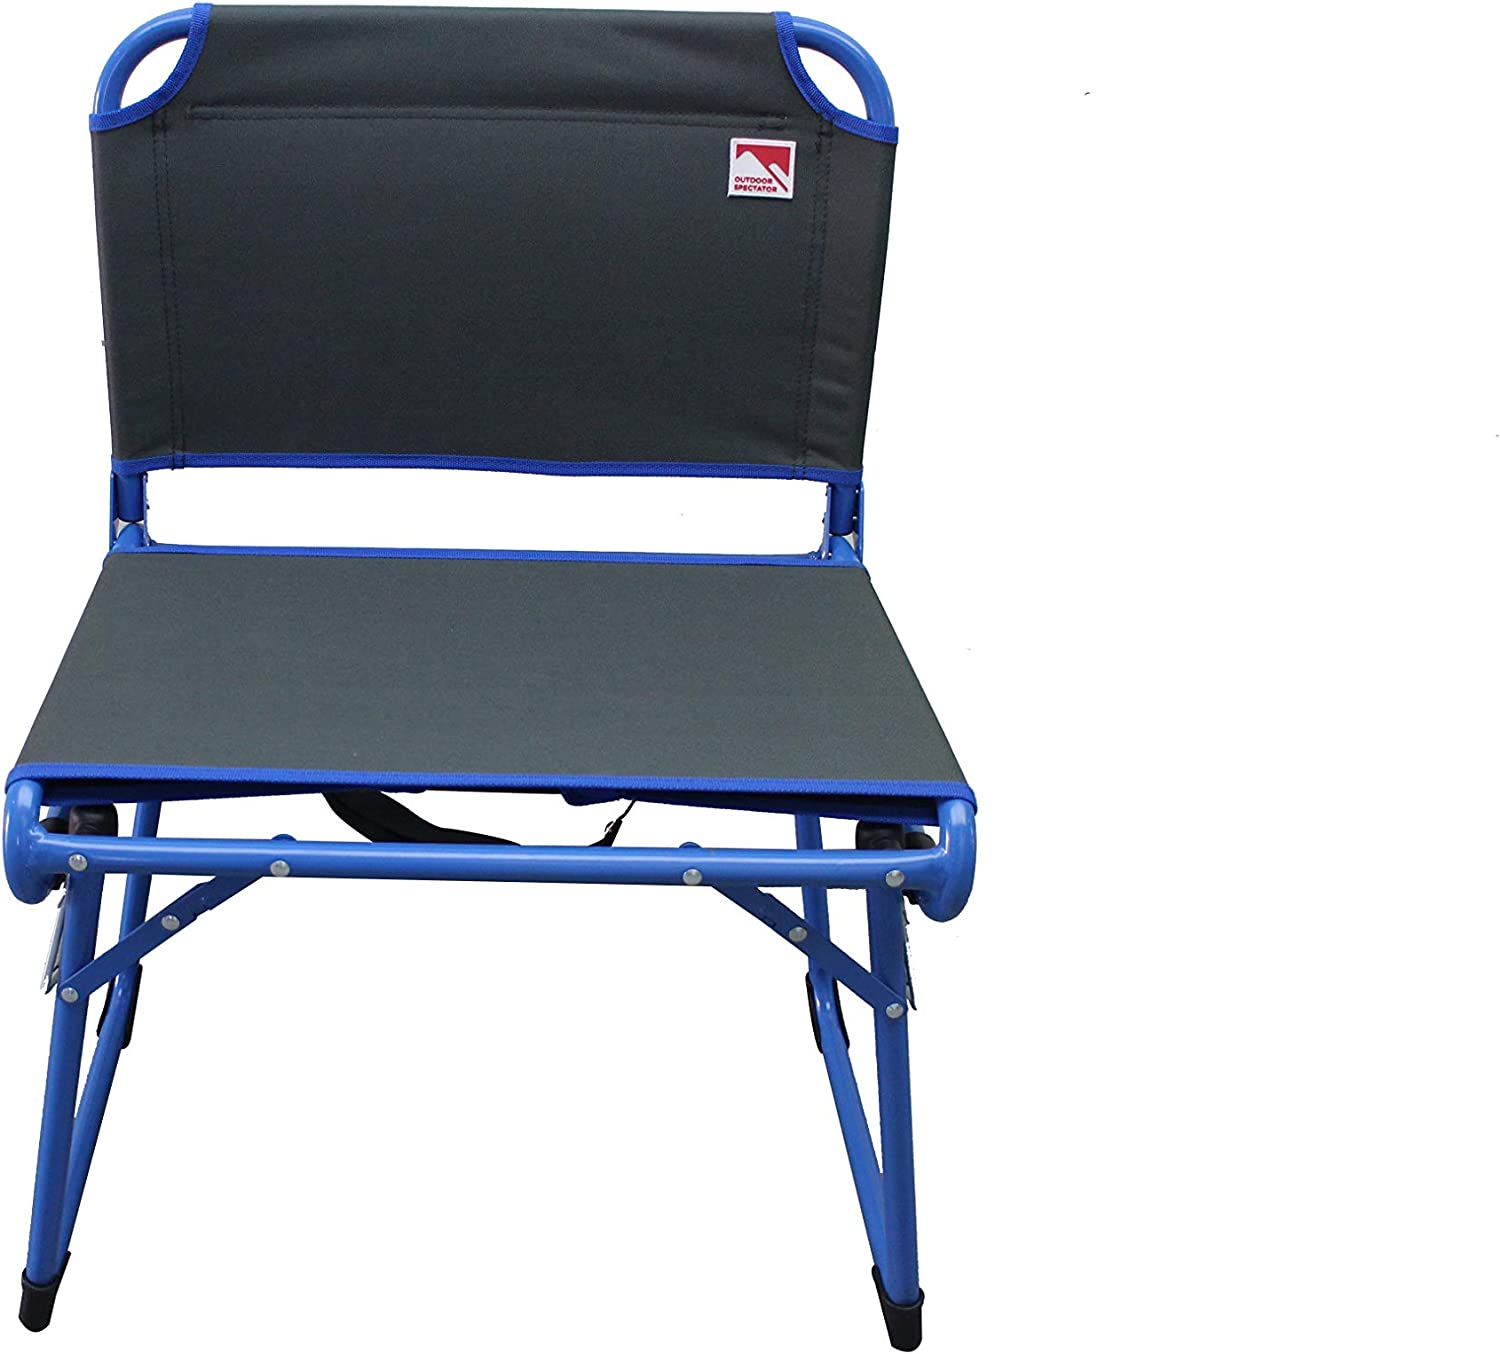 Outdoor Spectator Fold & Go Wide Stadium Seat for Bleachers Congreenible Low Profile Camping Chair (225 Lb Capacity)